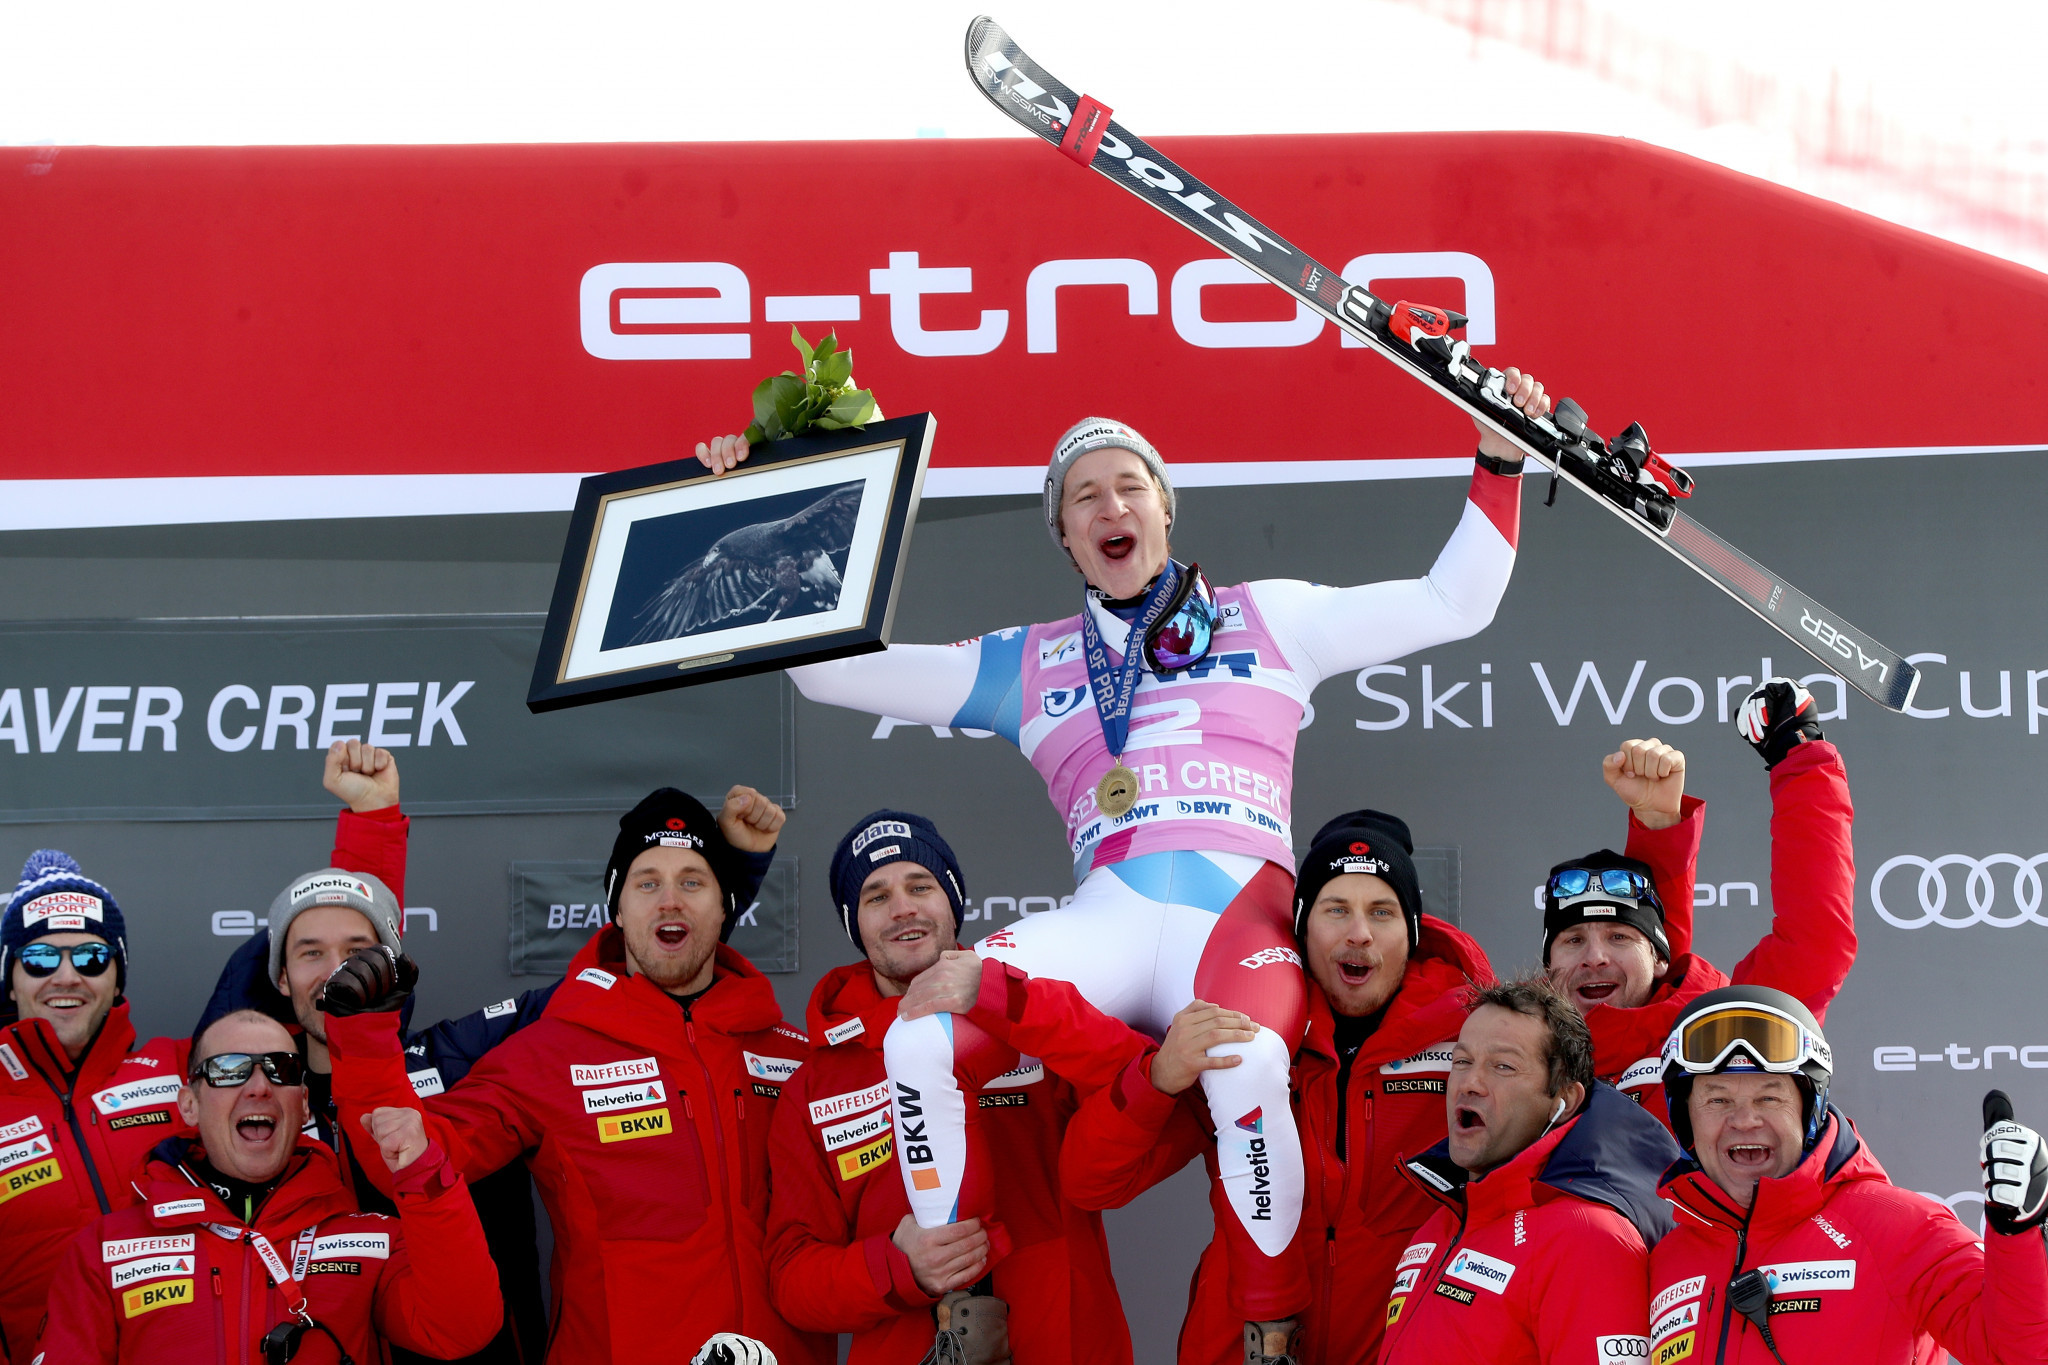 Marco Odermatt of Switzerland earned his first FIS Alpine Ski World Cup title in Beaver Creek ©Getty Images